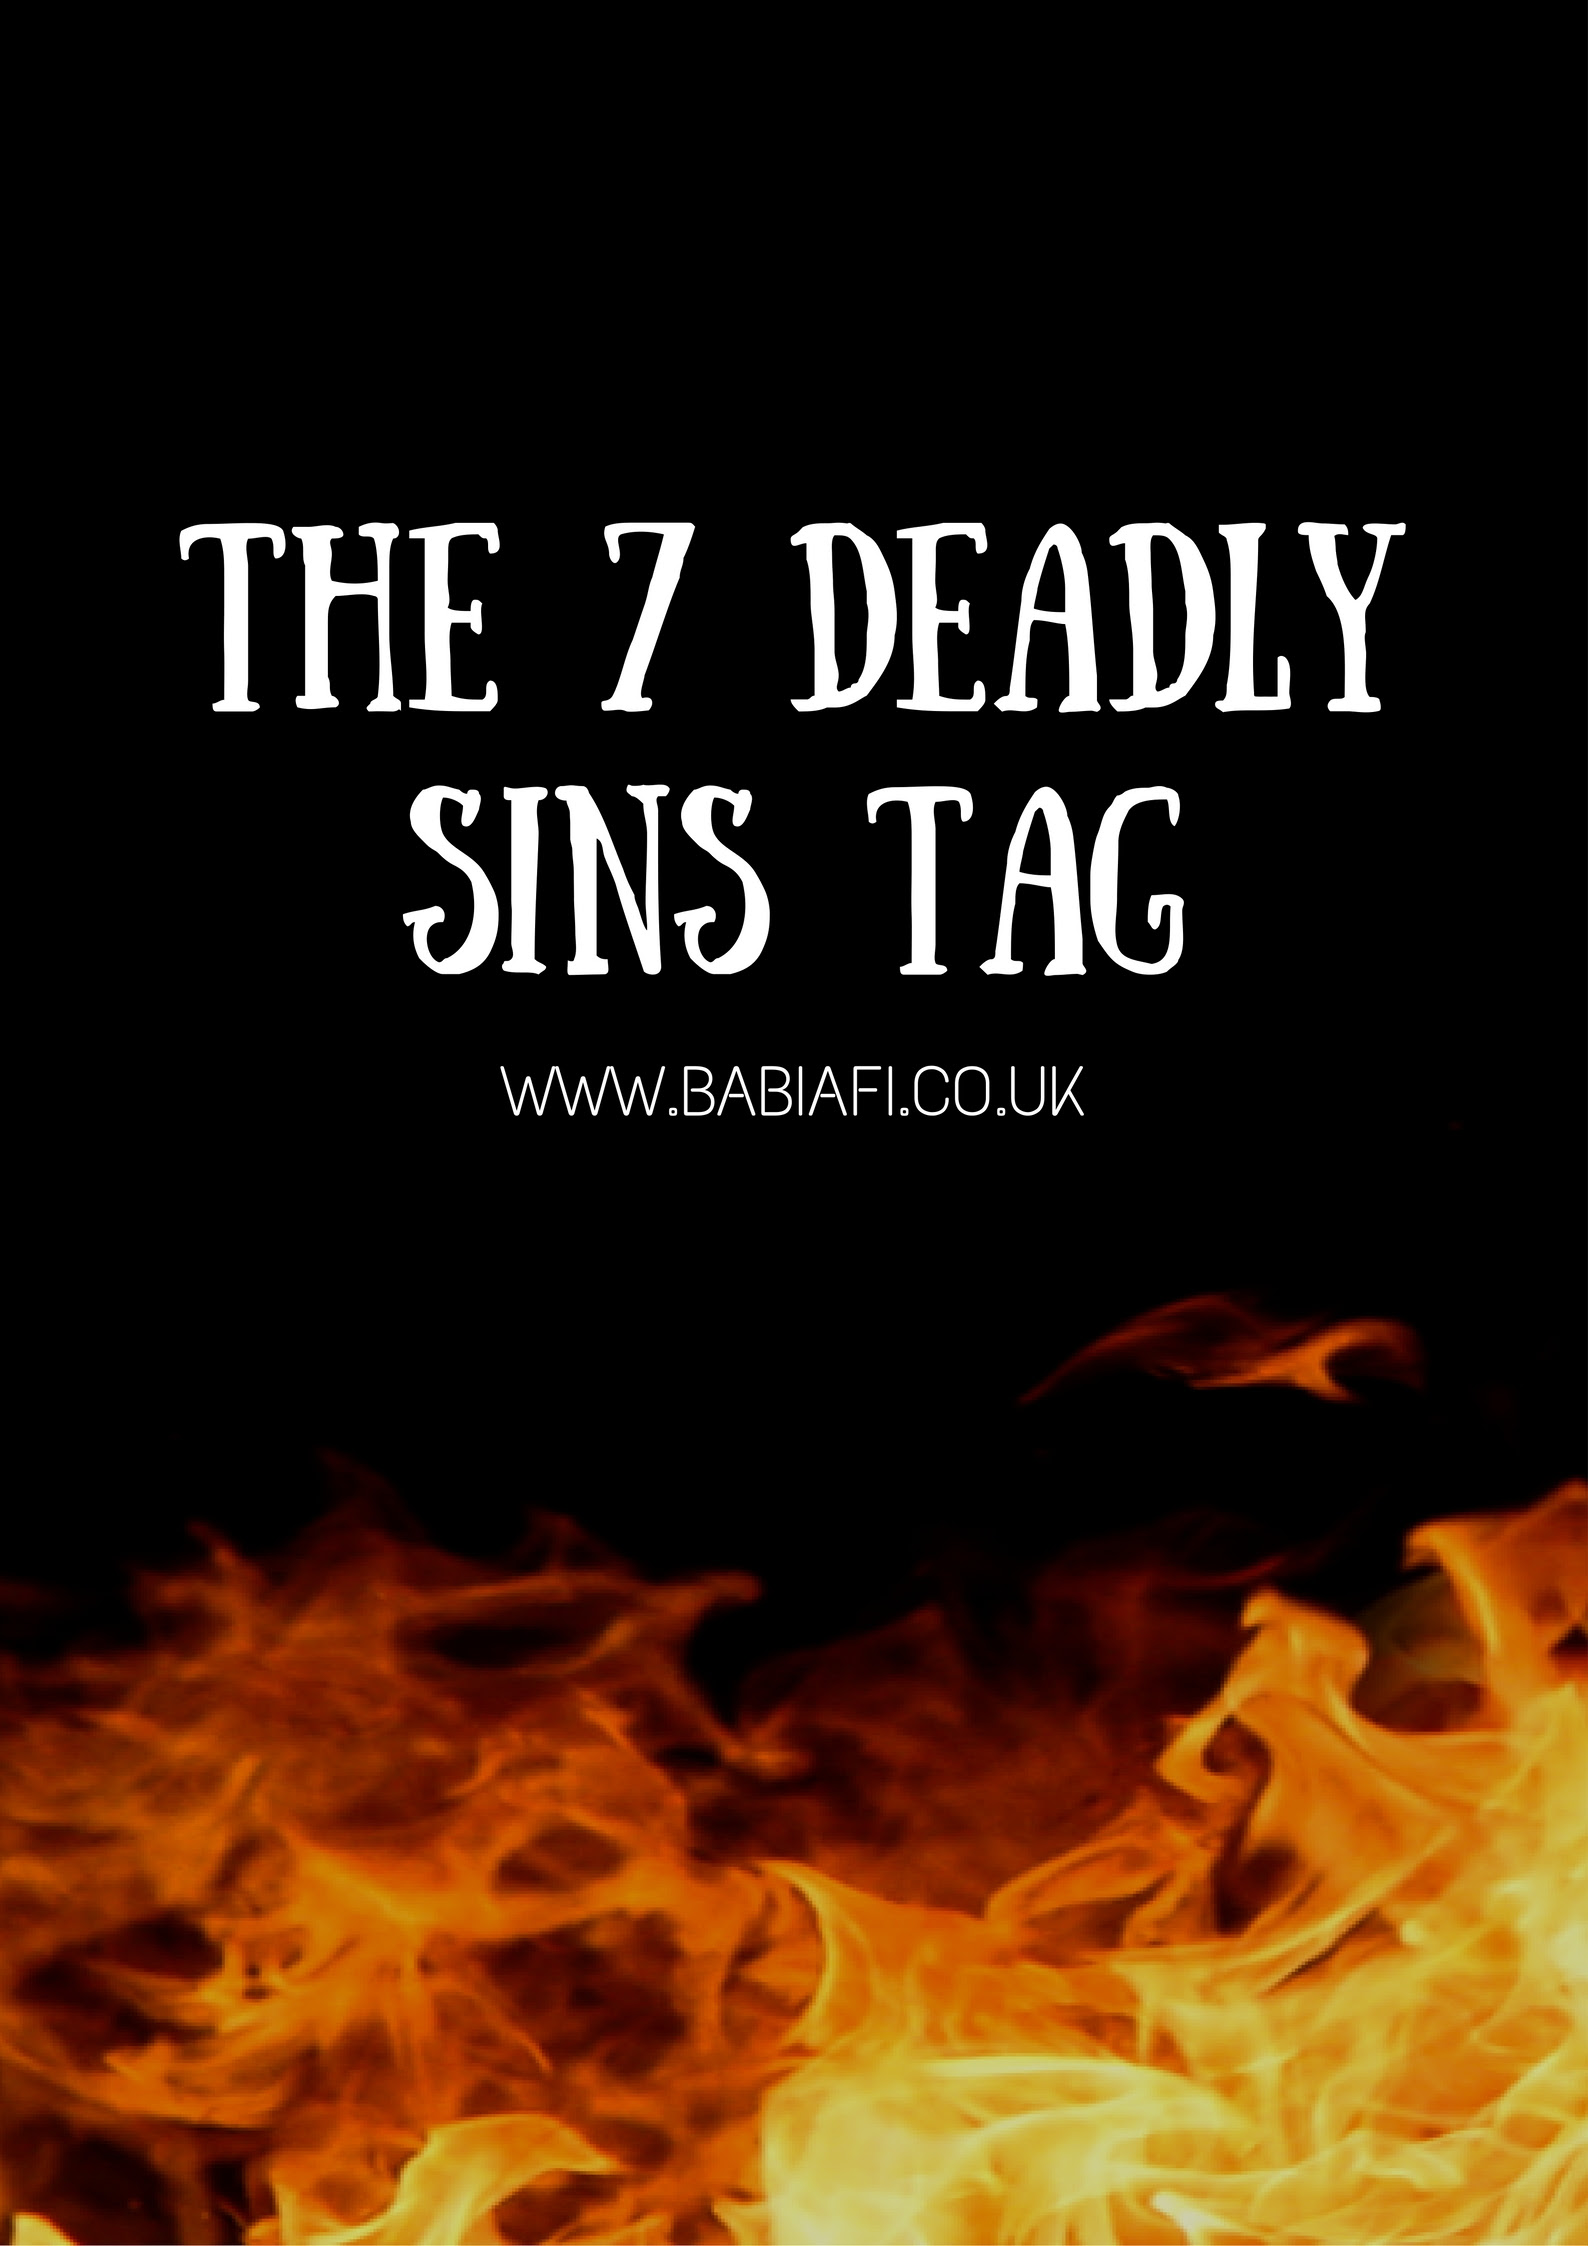 The 7 Deadly Sins Tag